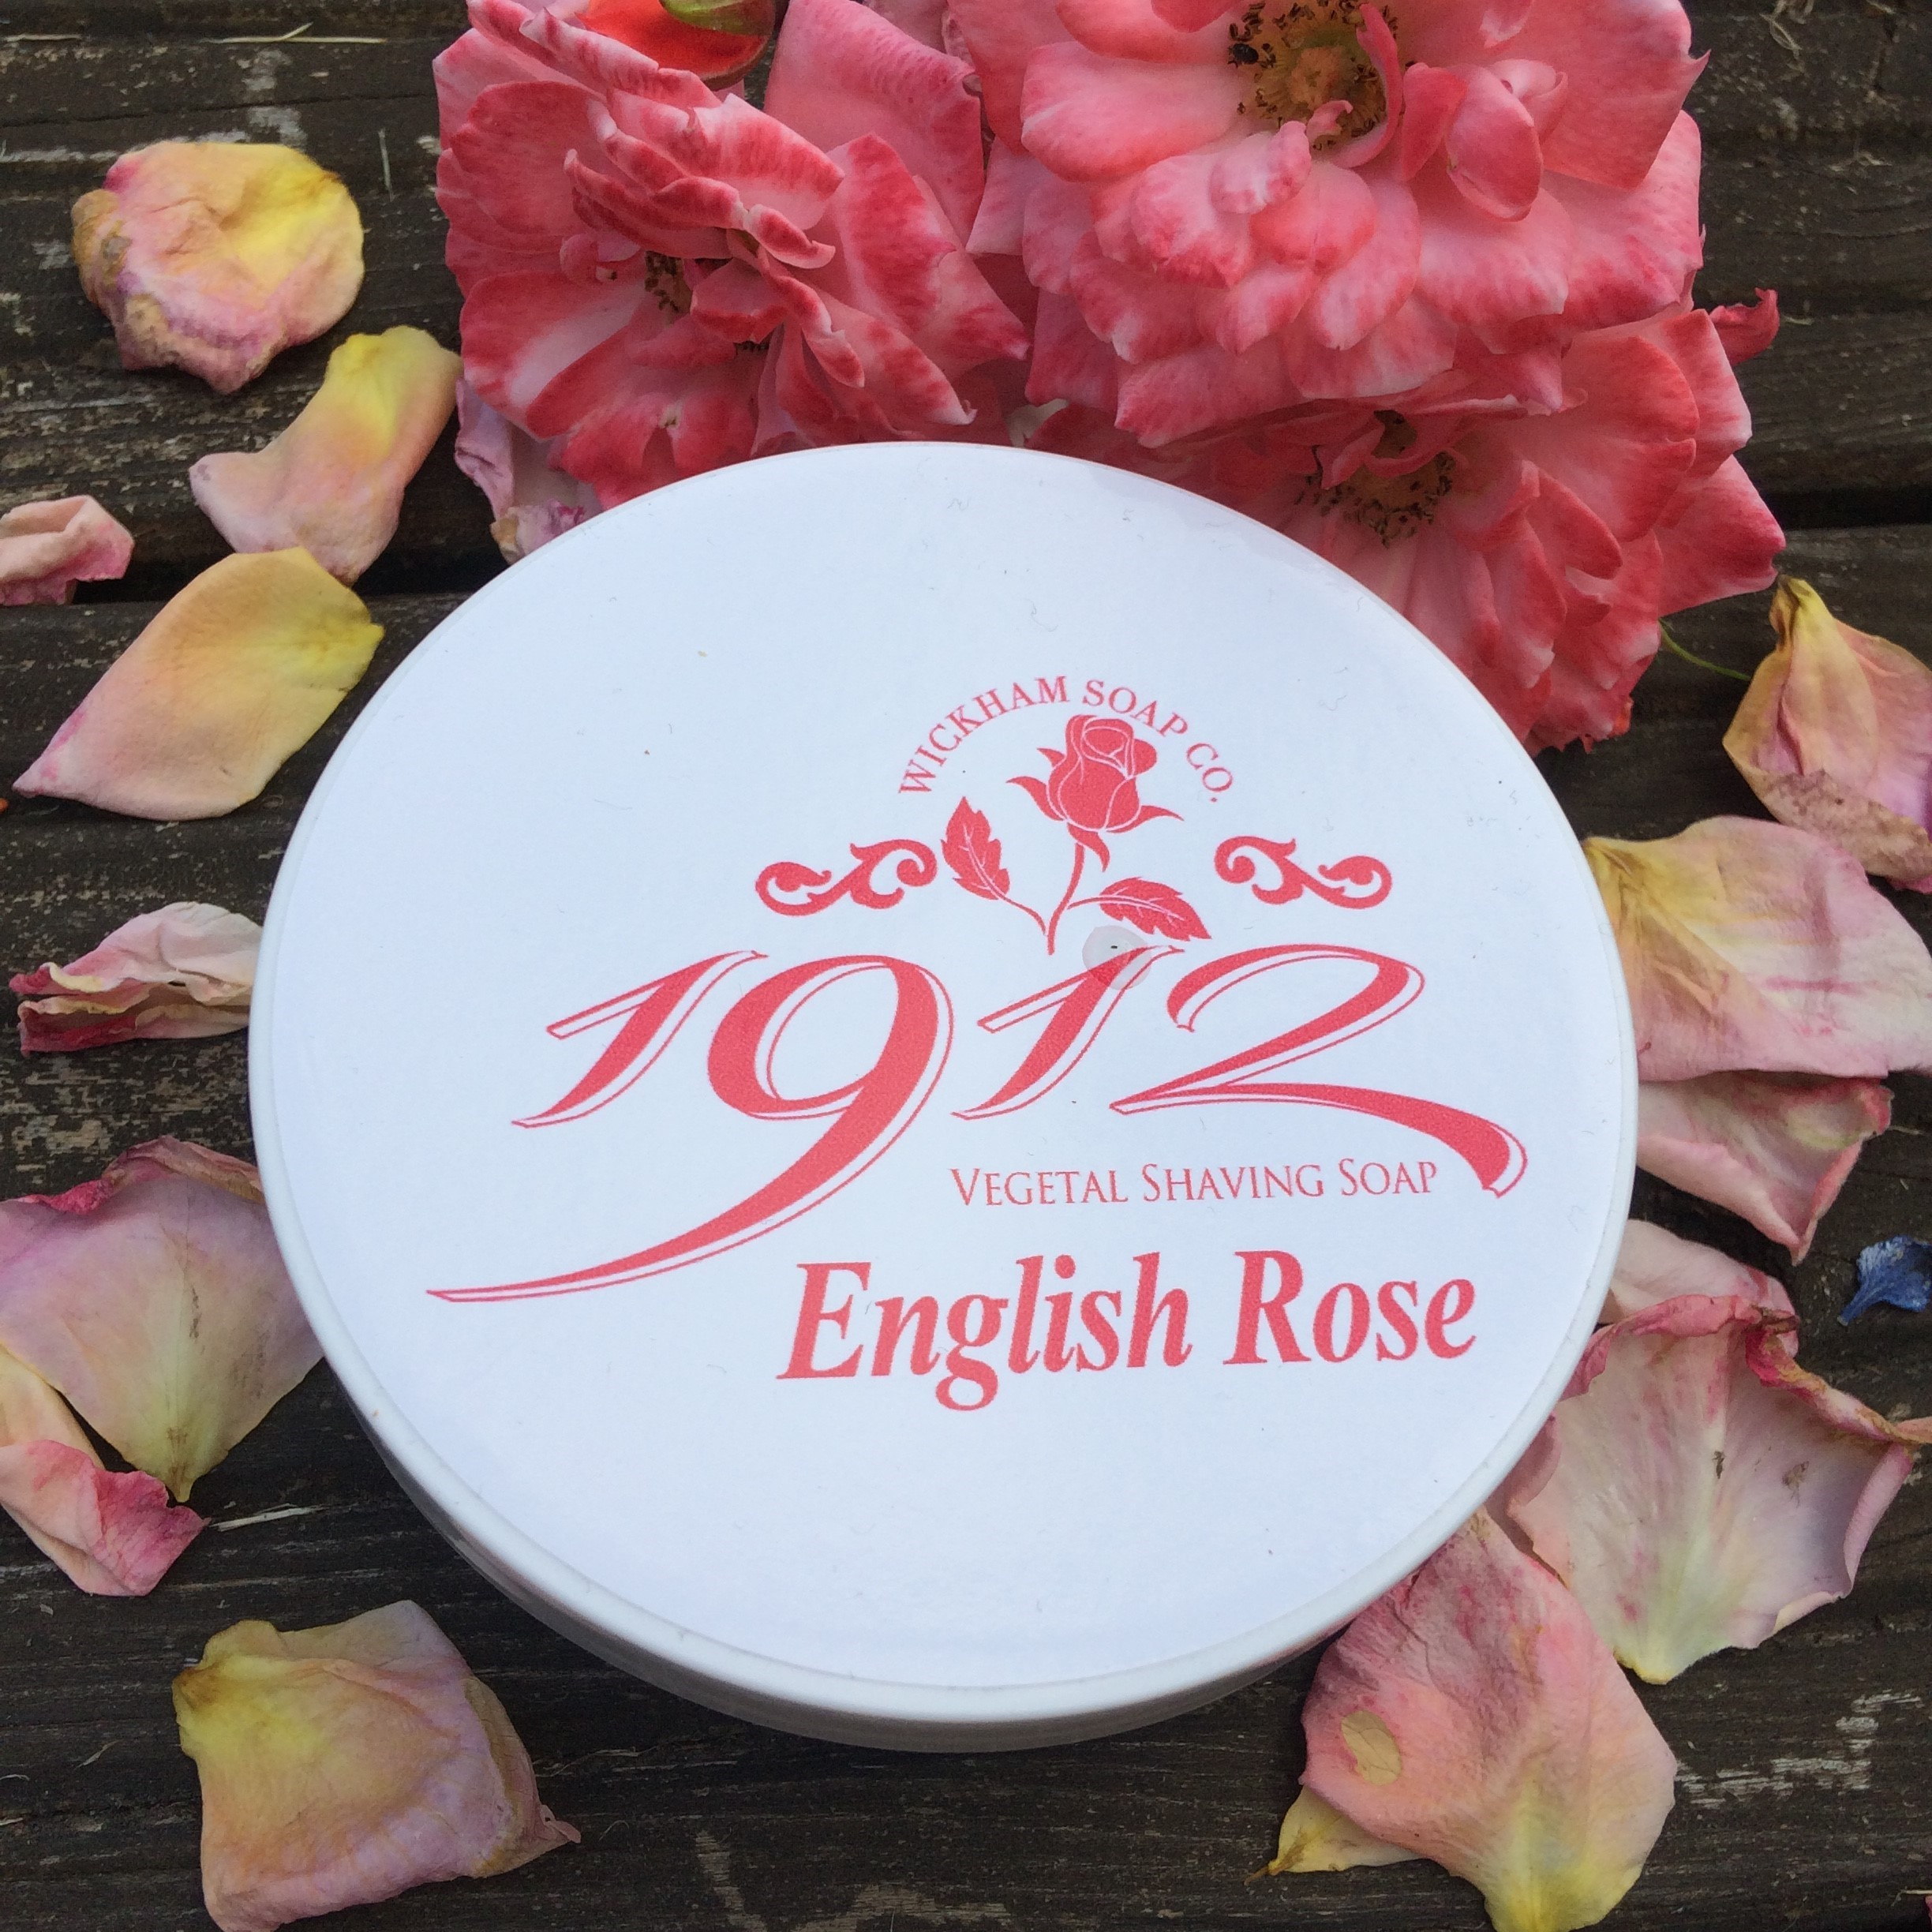 English Rose Shaving Soap Wickham Soap Co | Agent Shave